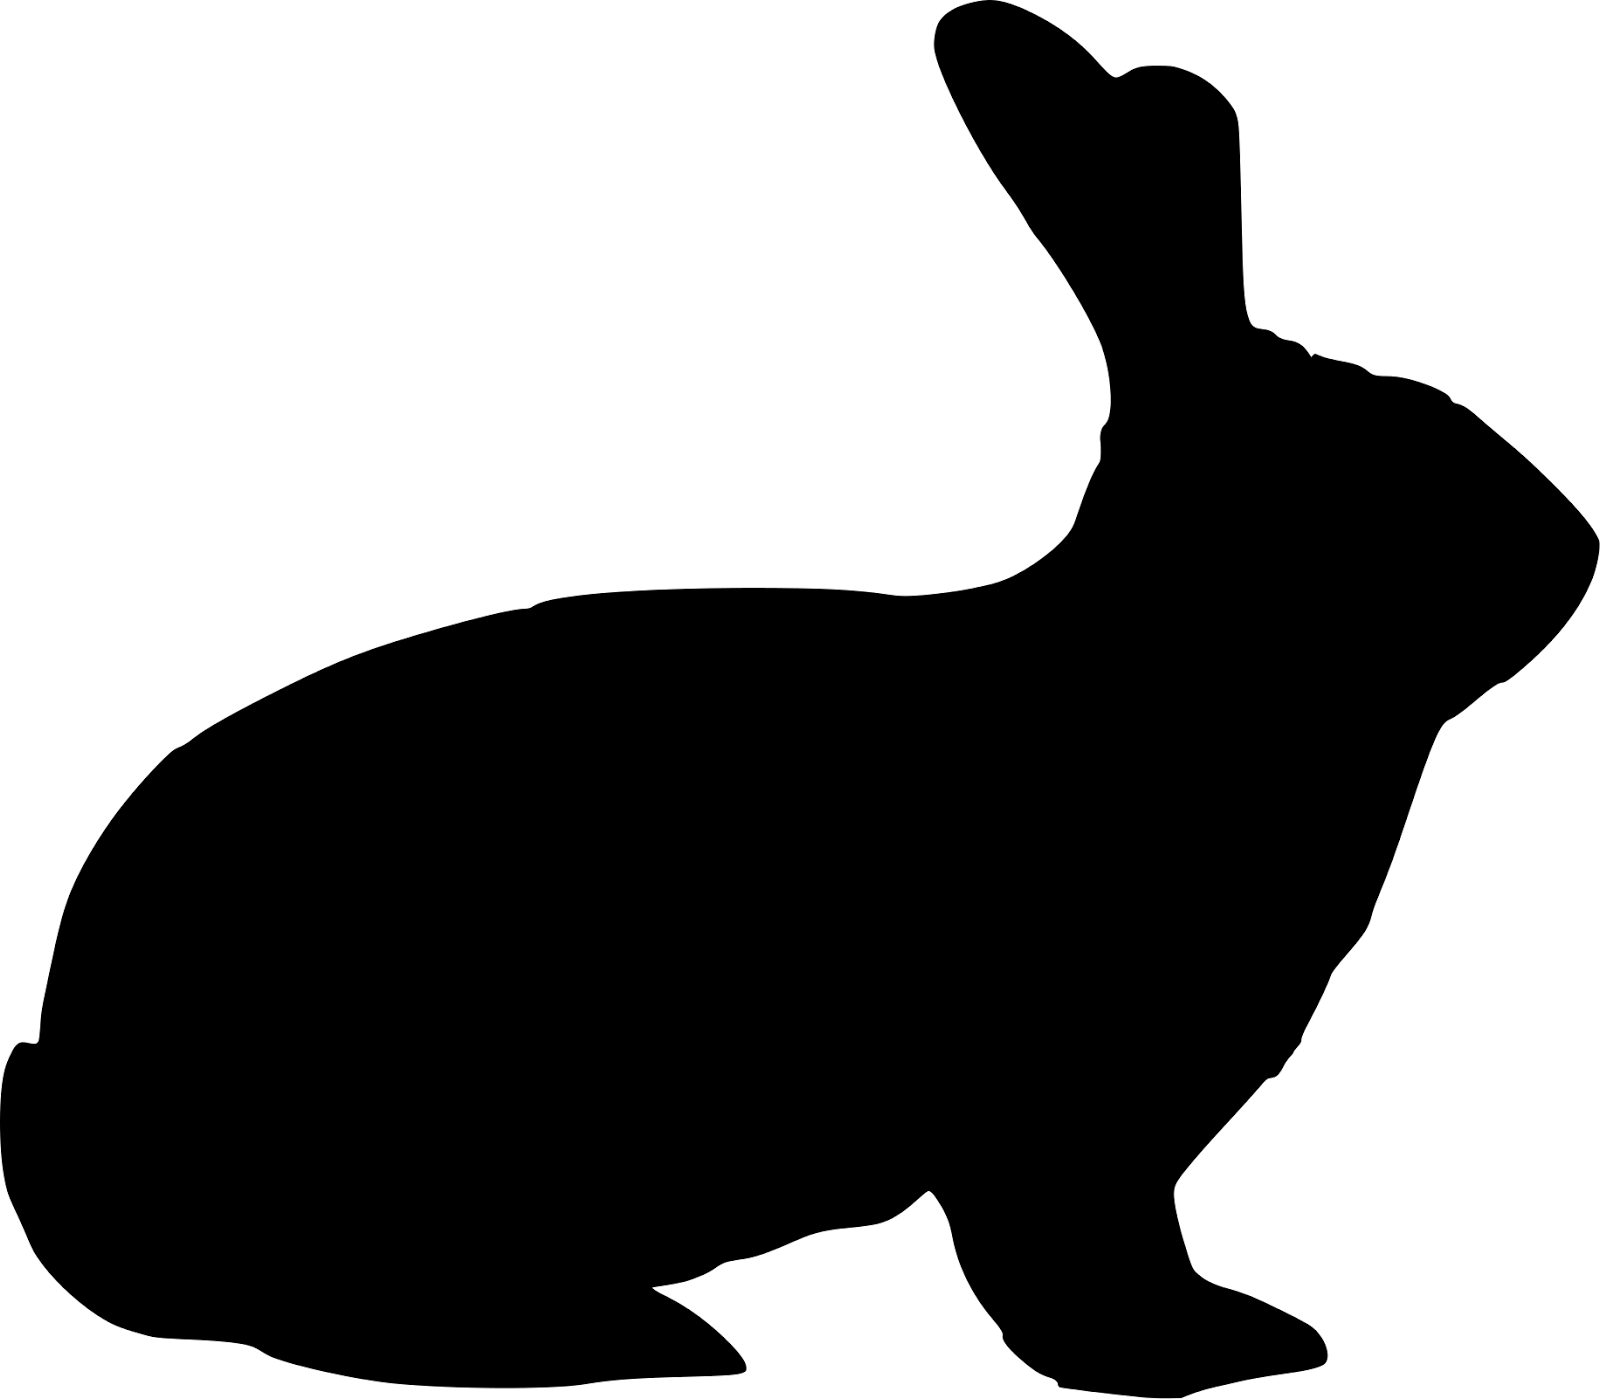 clipart image bunny silhouette - photo #16